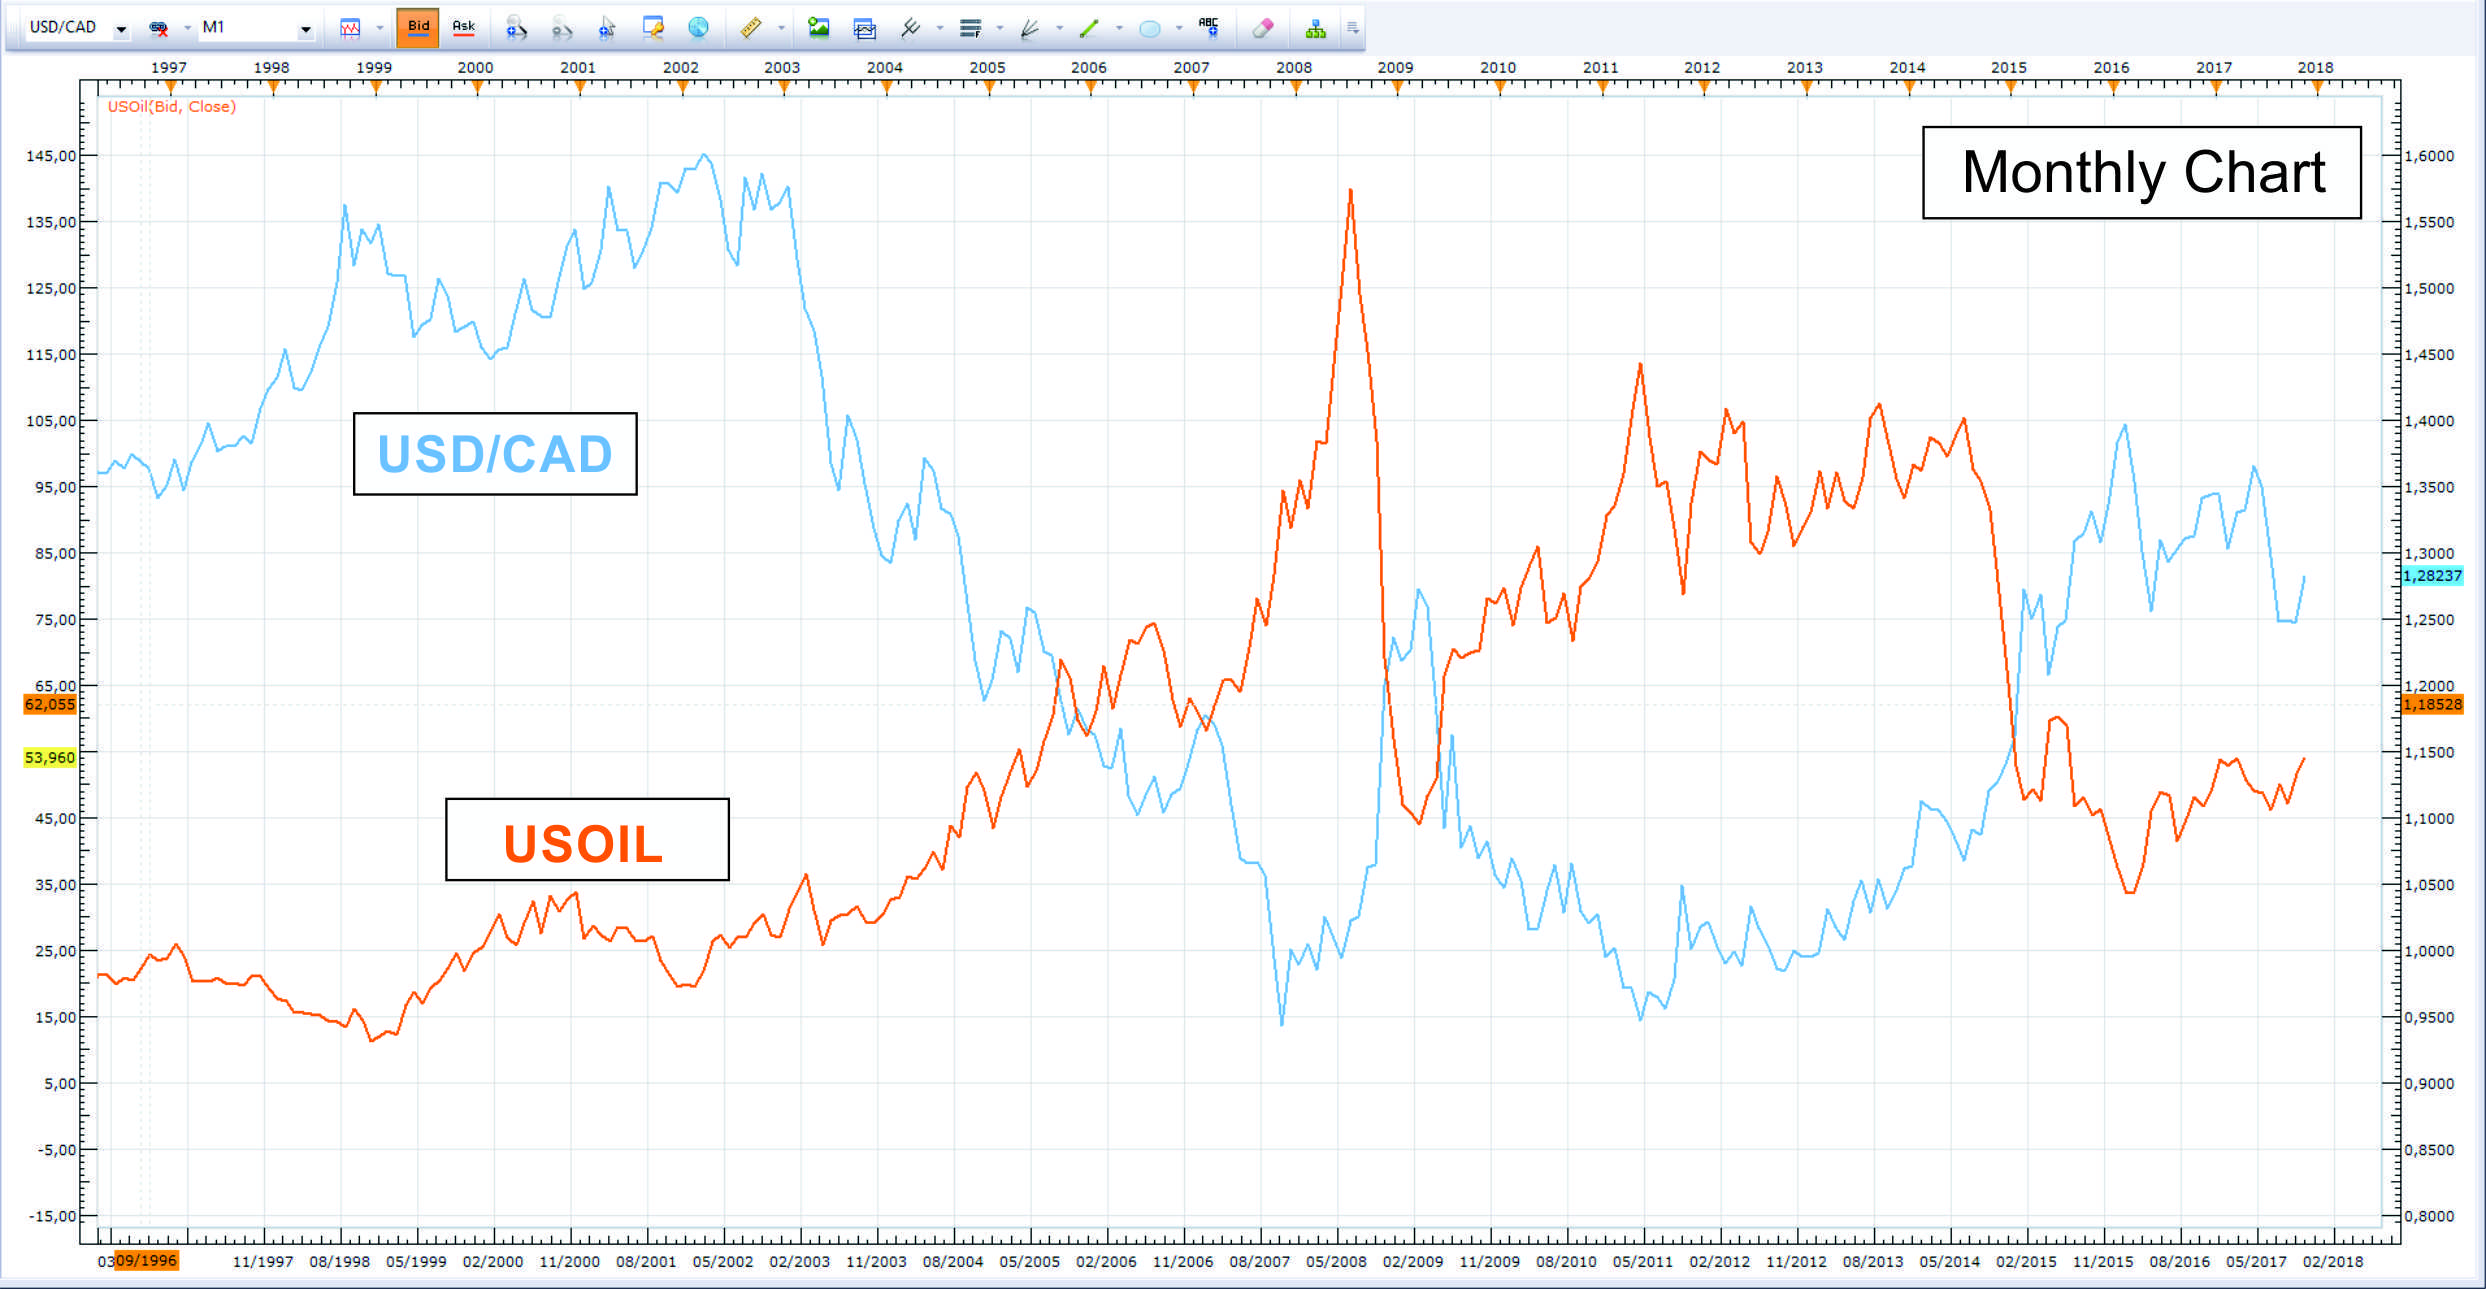 Figure 1 Shows Historical Usoil Prices And The Usd Cad Exchange Rate Going Back 10 Years Both Series Have Been Scaled For Ease Of Comparison